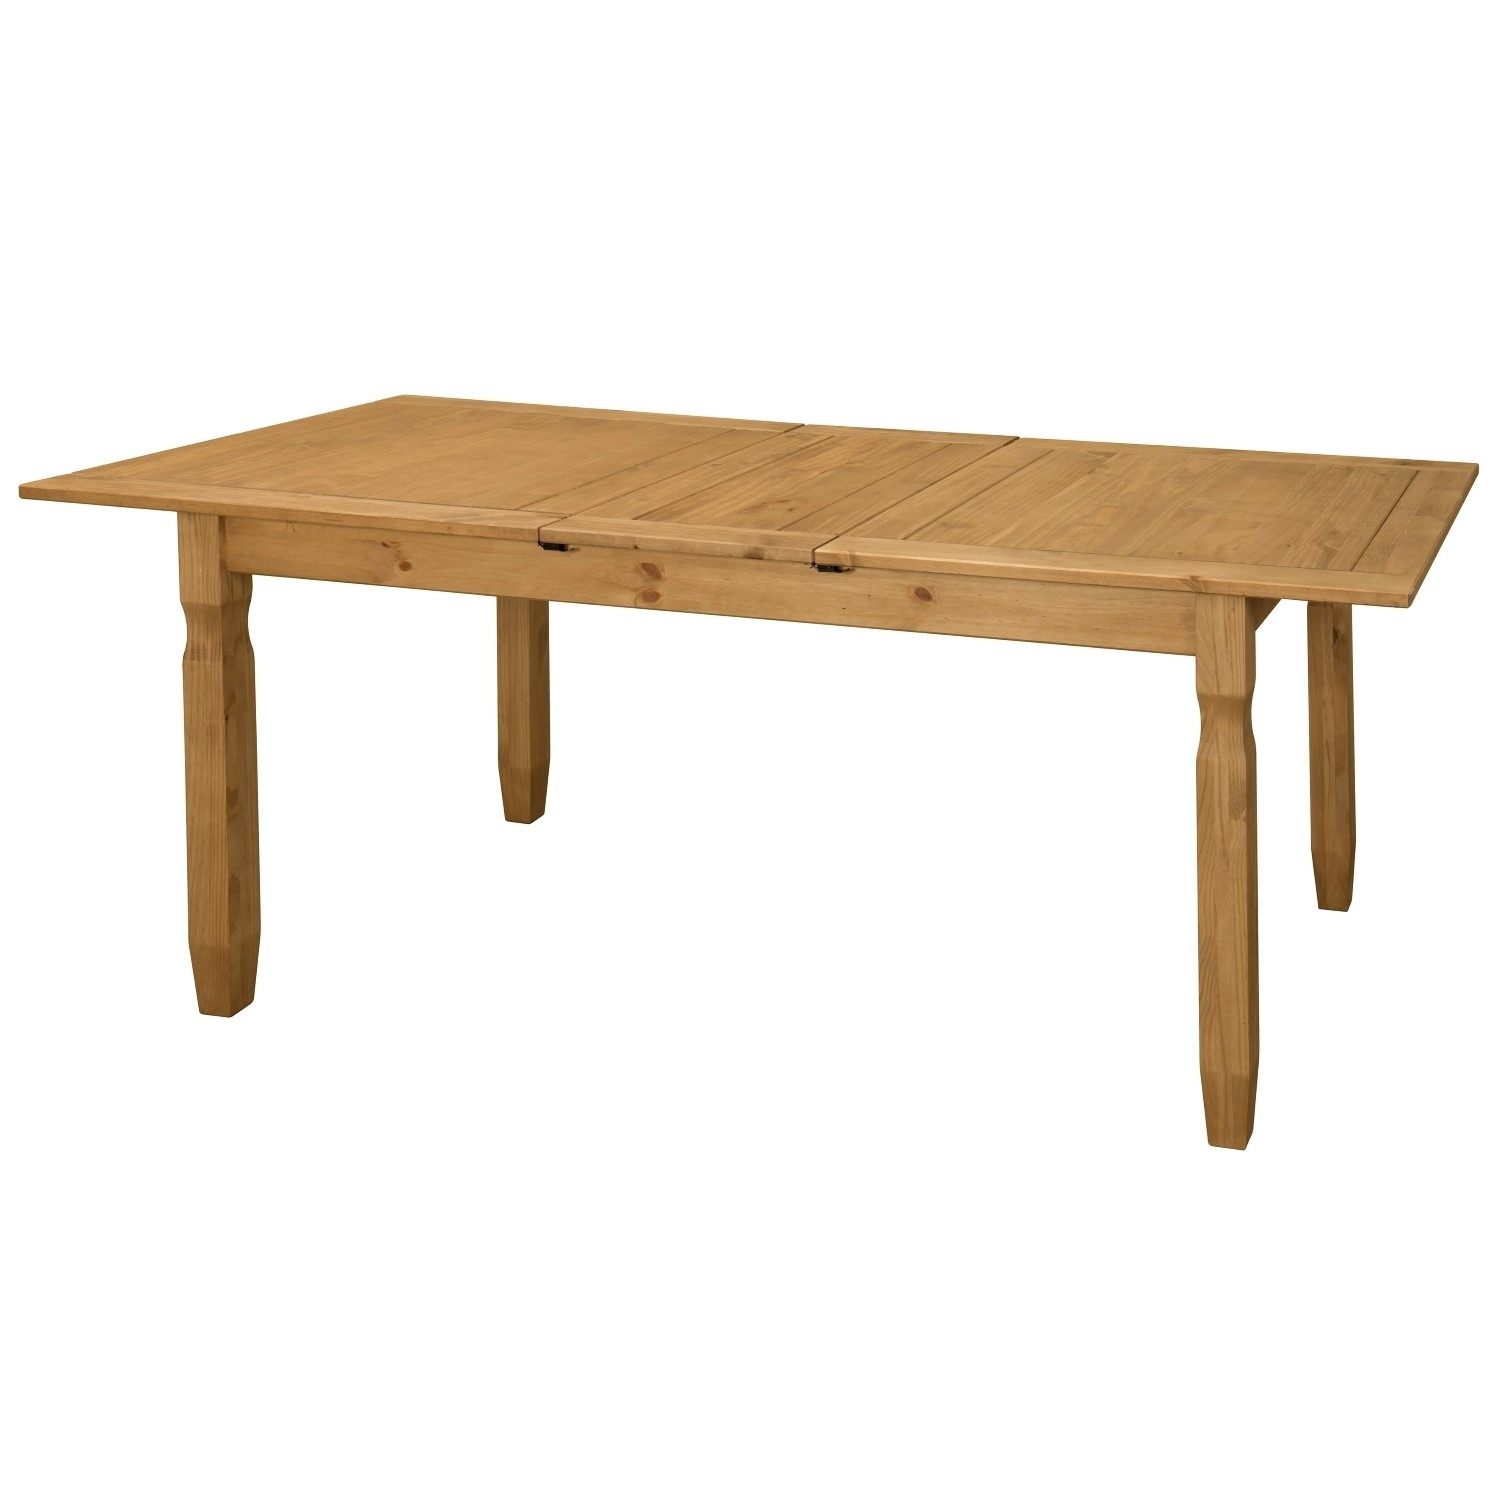 Corona Solid Pine Wood Large Extending 6 8 Seater Dining